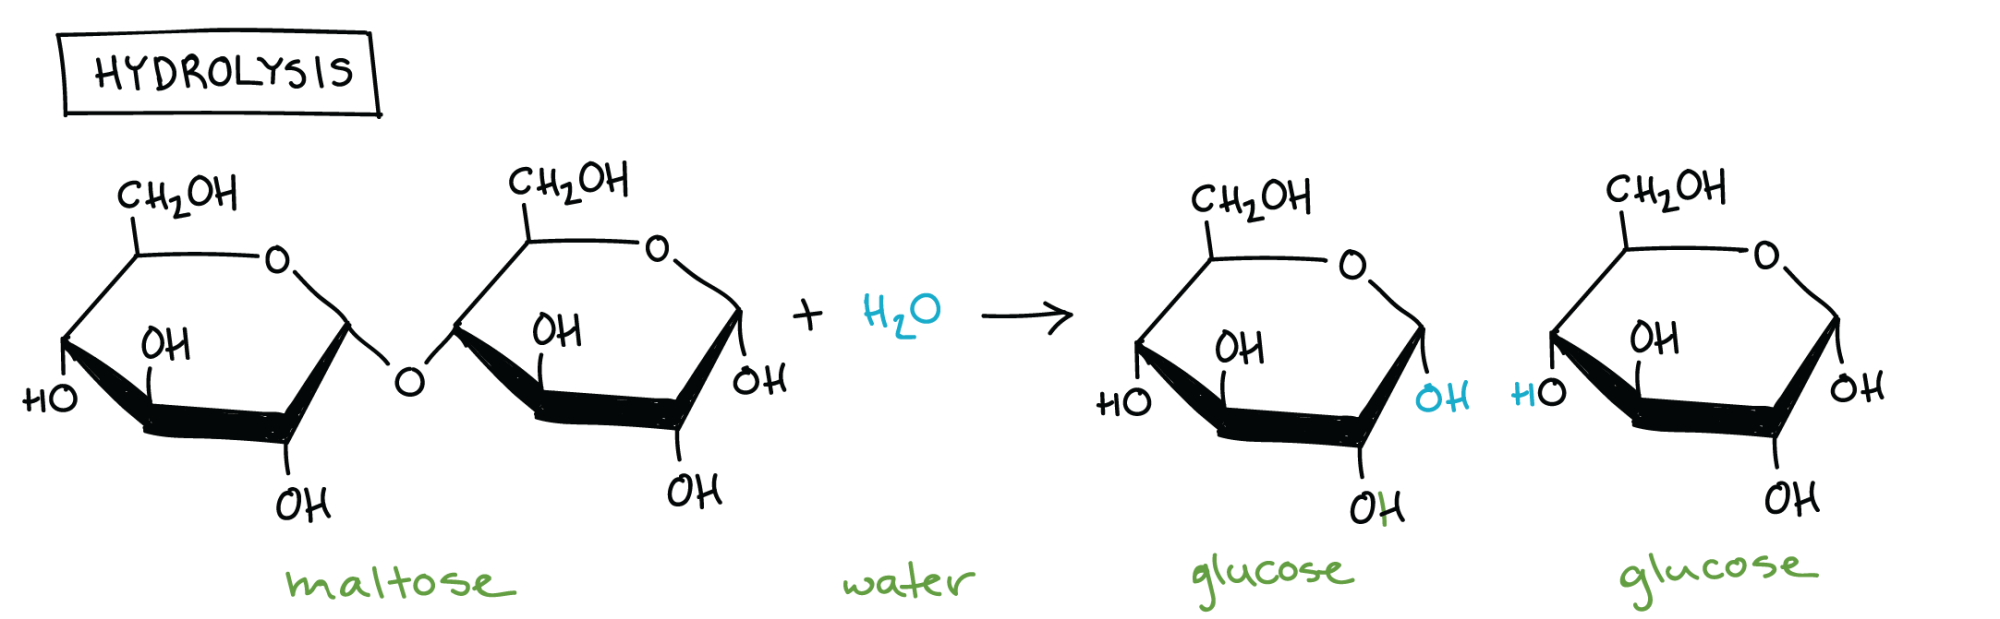 hight resolution of hydrolysis of maltose in which a molecule of maltose combines with a molecule of water